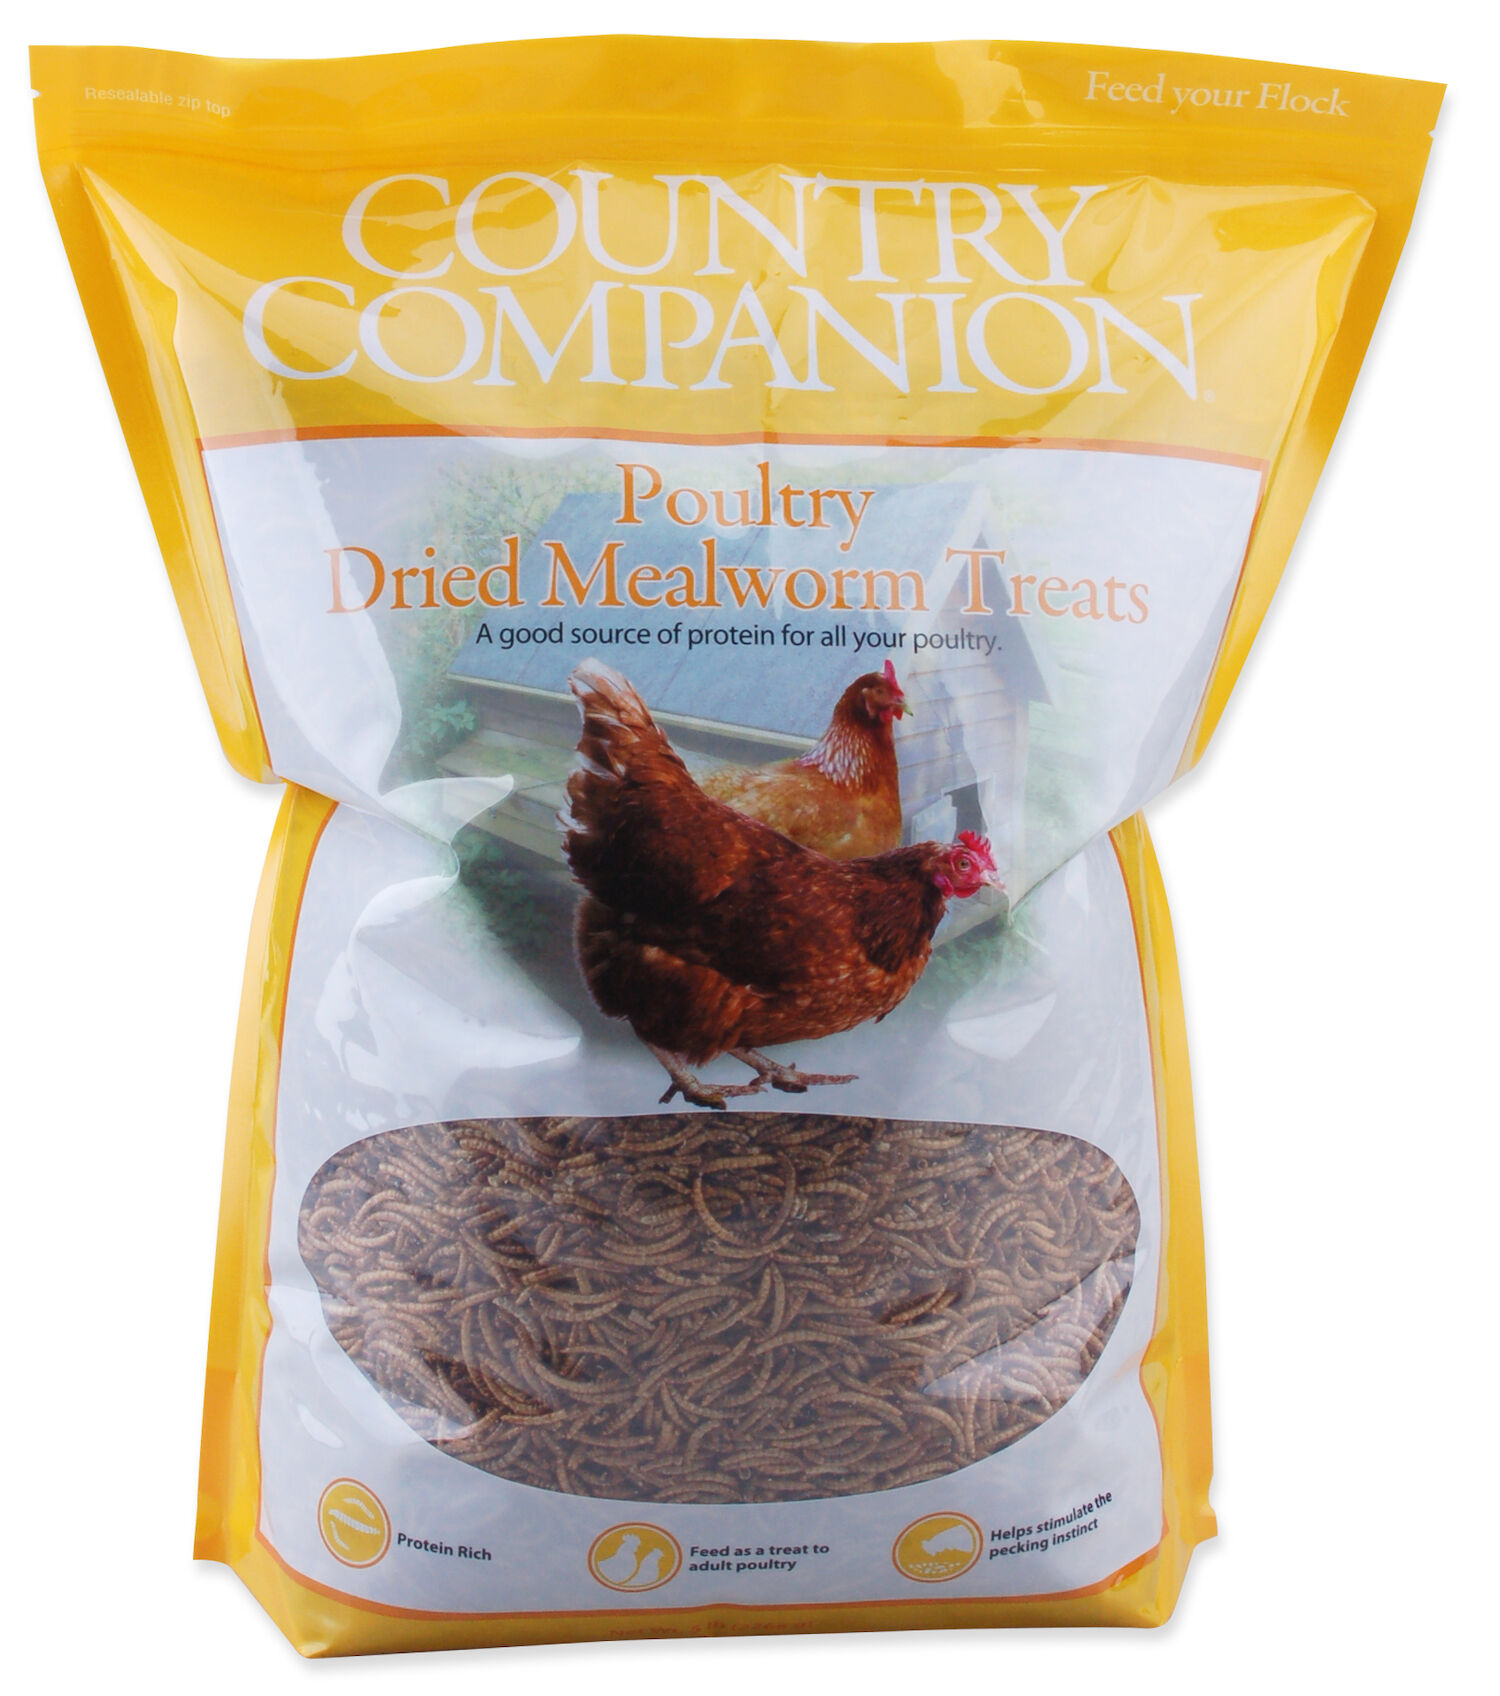 COCO_mealworms30.jpg